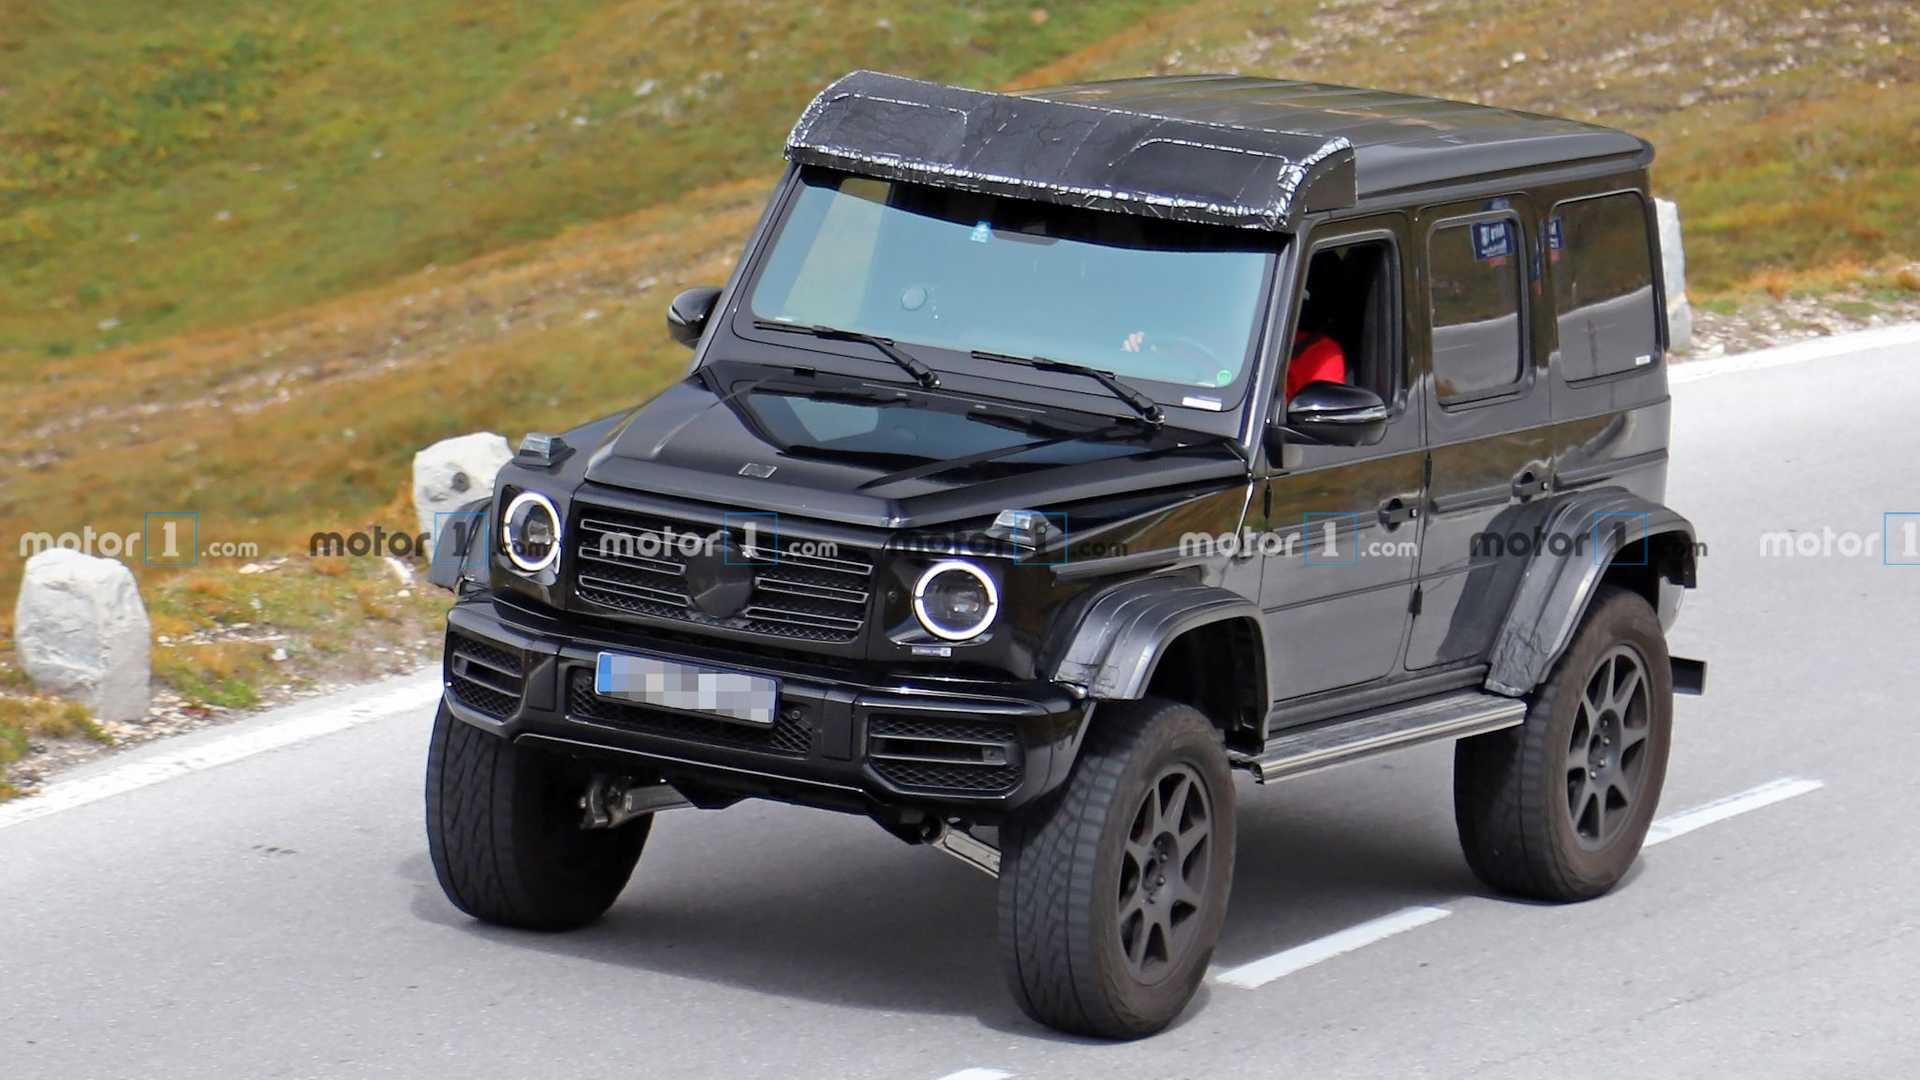 The camera-wielding crowd has once again tracked down a particularly well-outfitted Mercedes-Benz G-Class with plenty of advanced off-road features. This may very well be the successor to the outgoing G 500 4x4² spec.